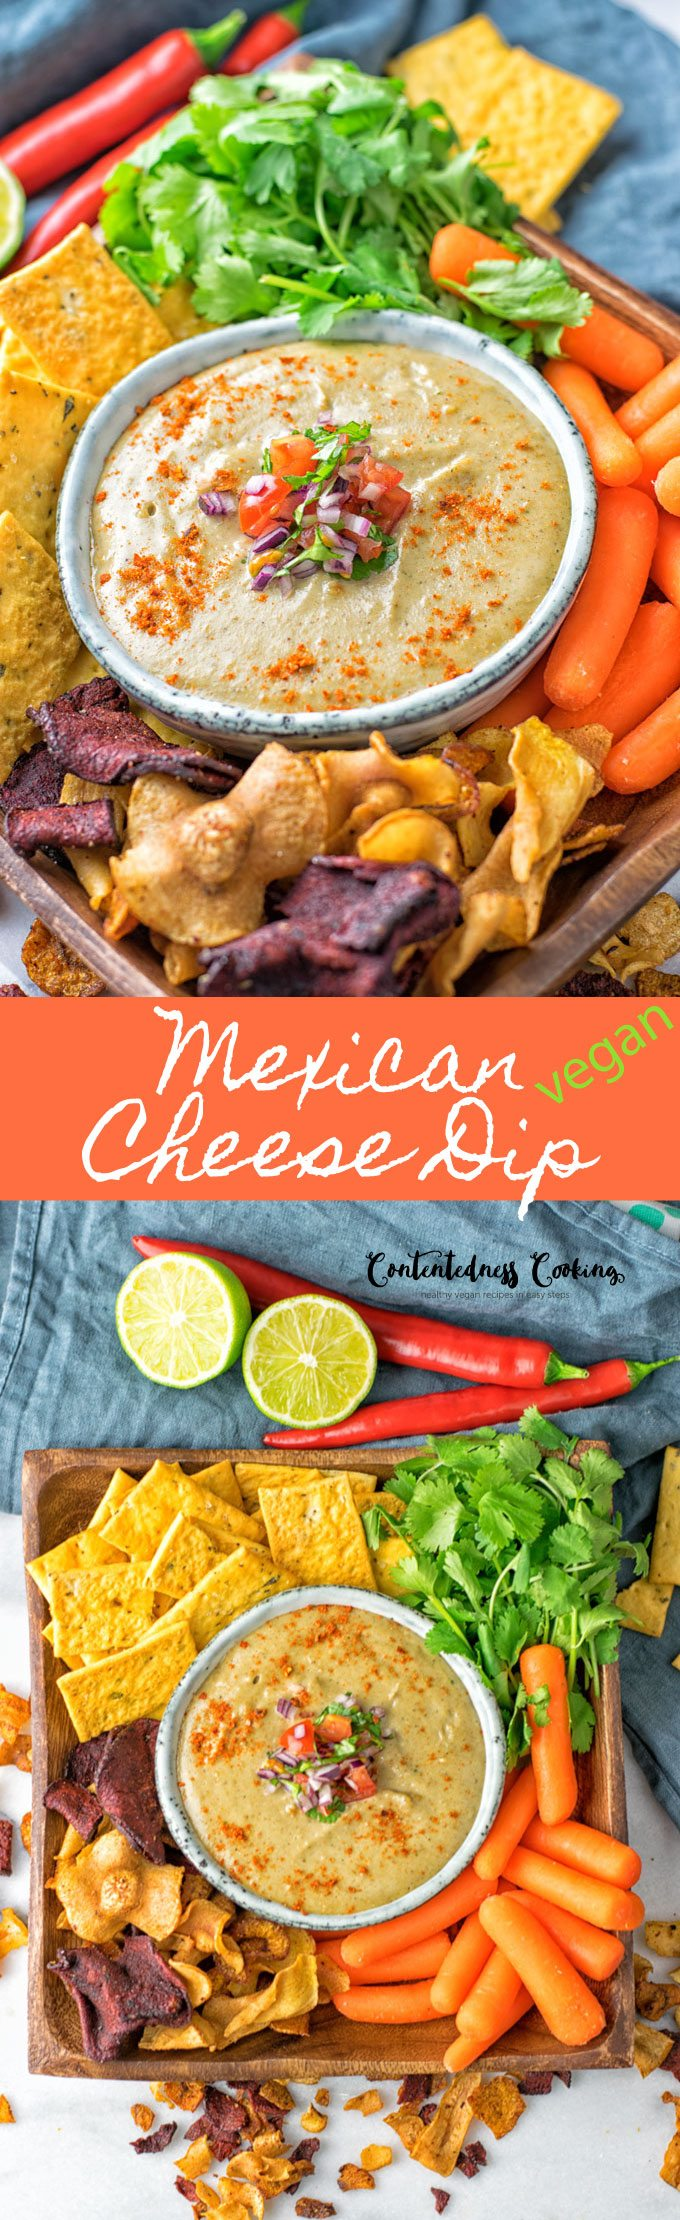 Mexican Cheese Dip | #vegan #glutenfree